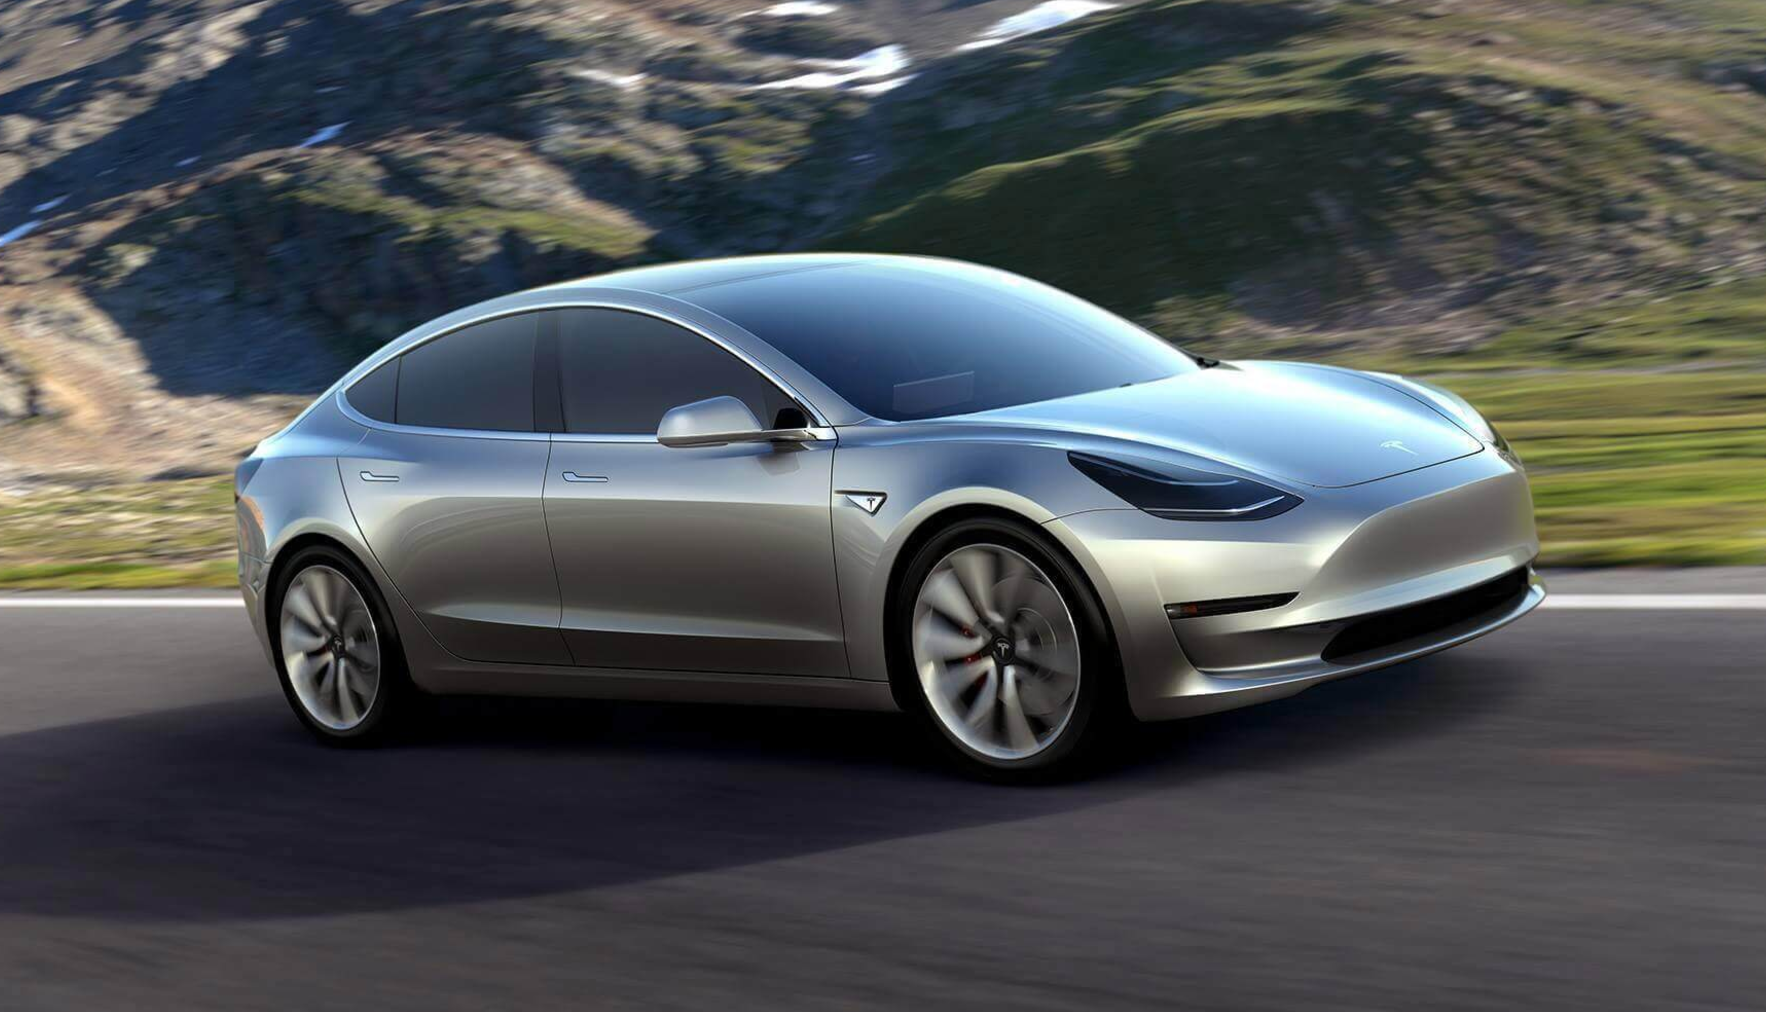 Here are the biggest differences between Tesla's Model 3 and Model S